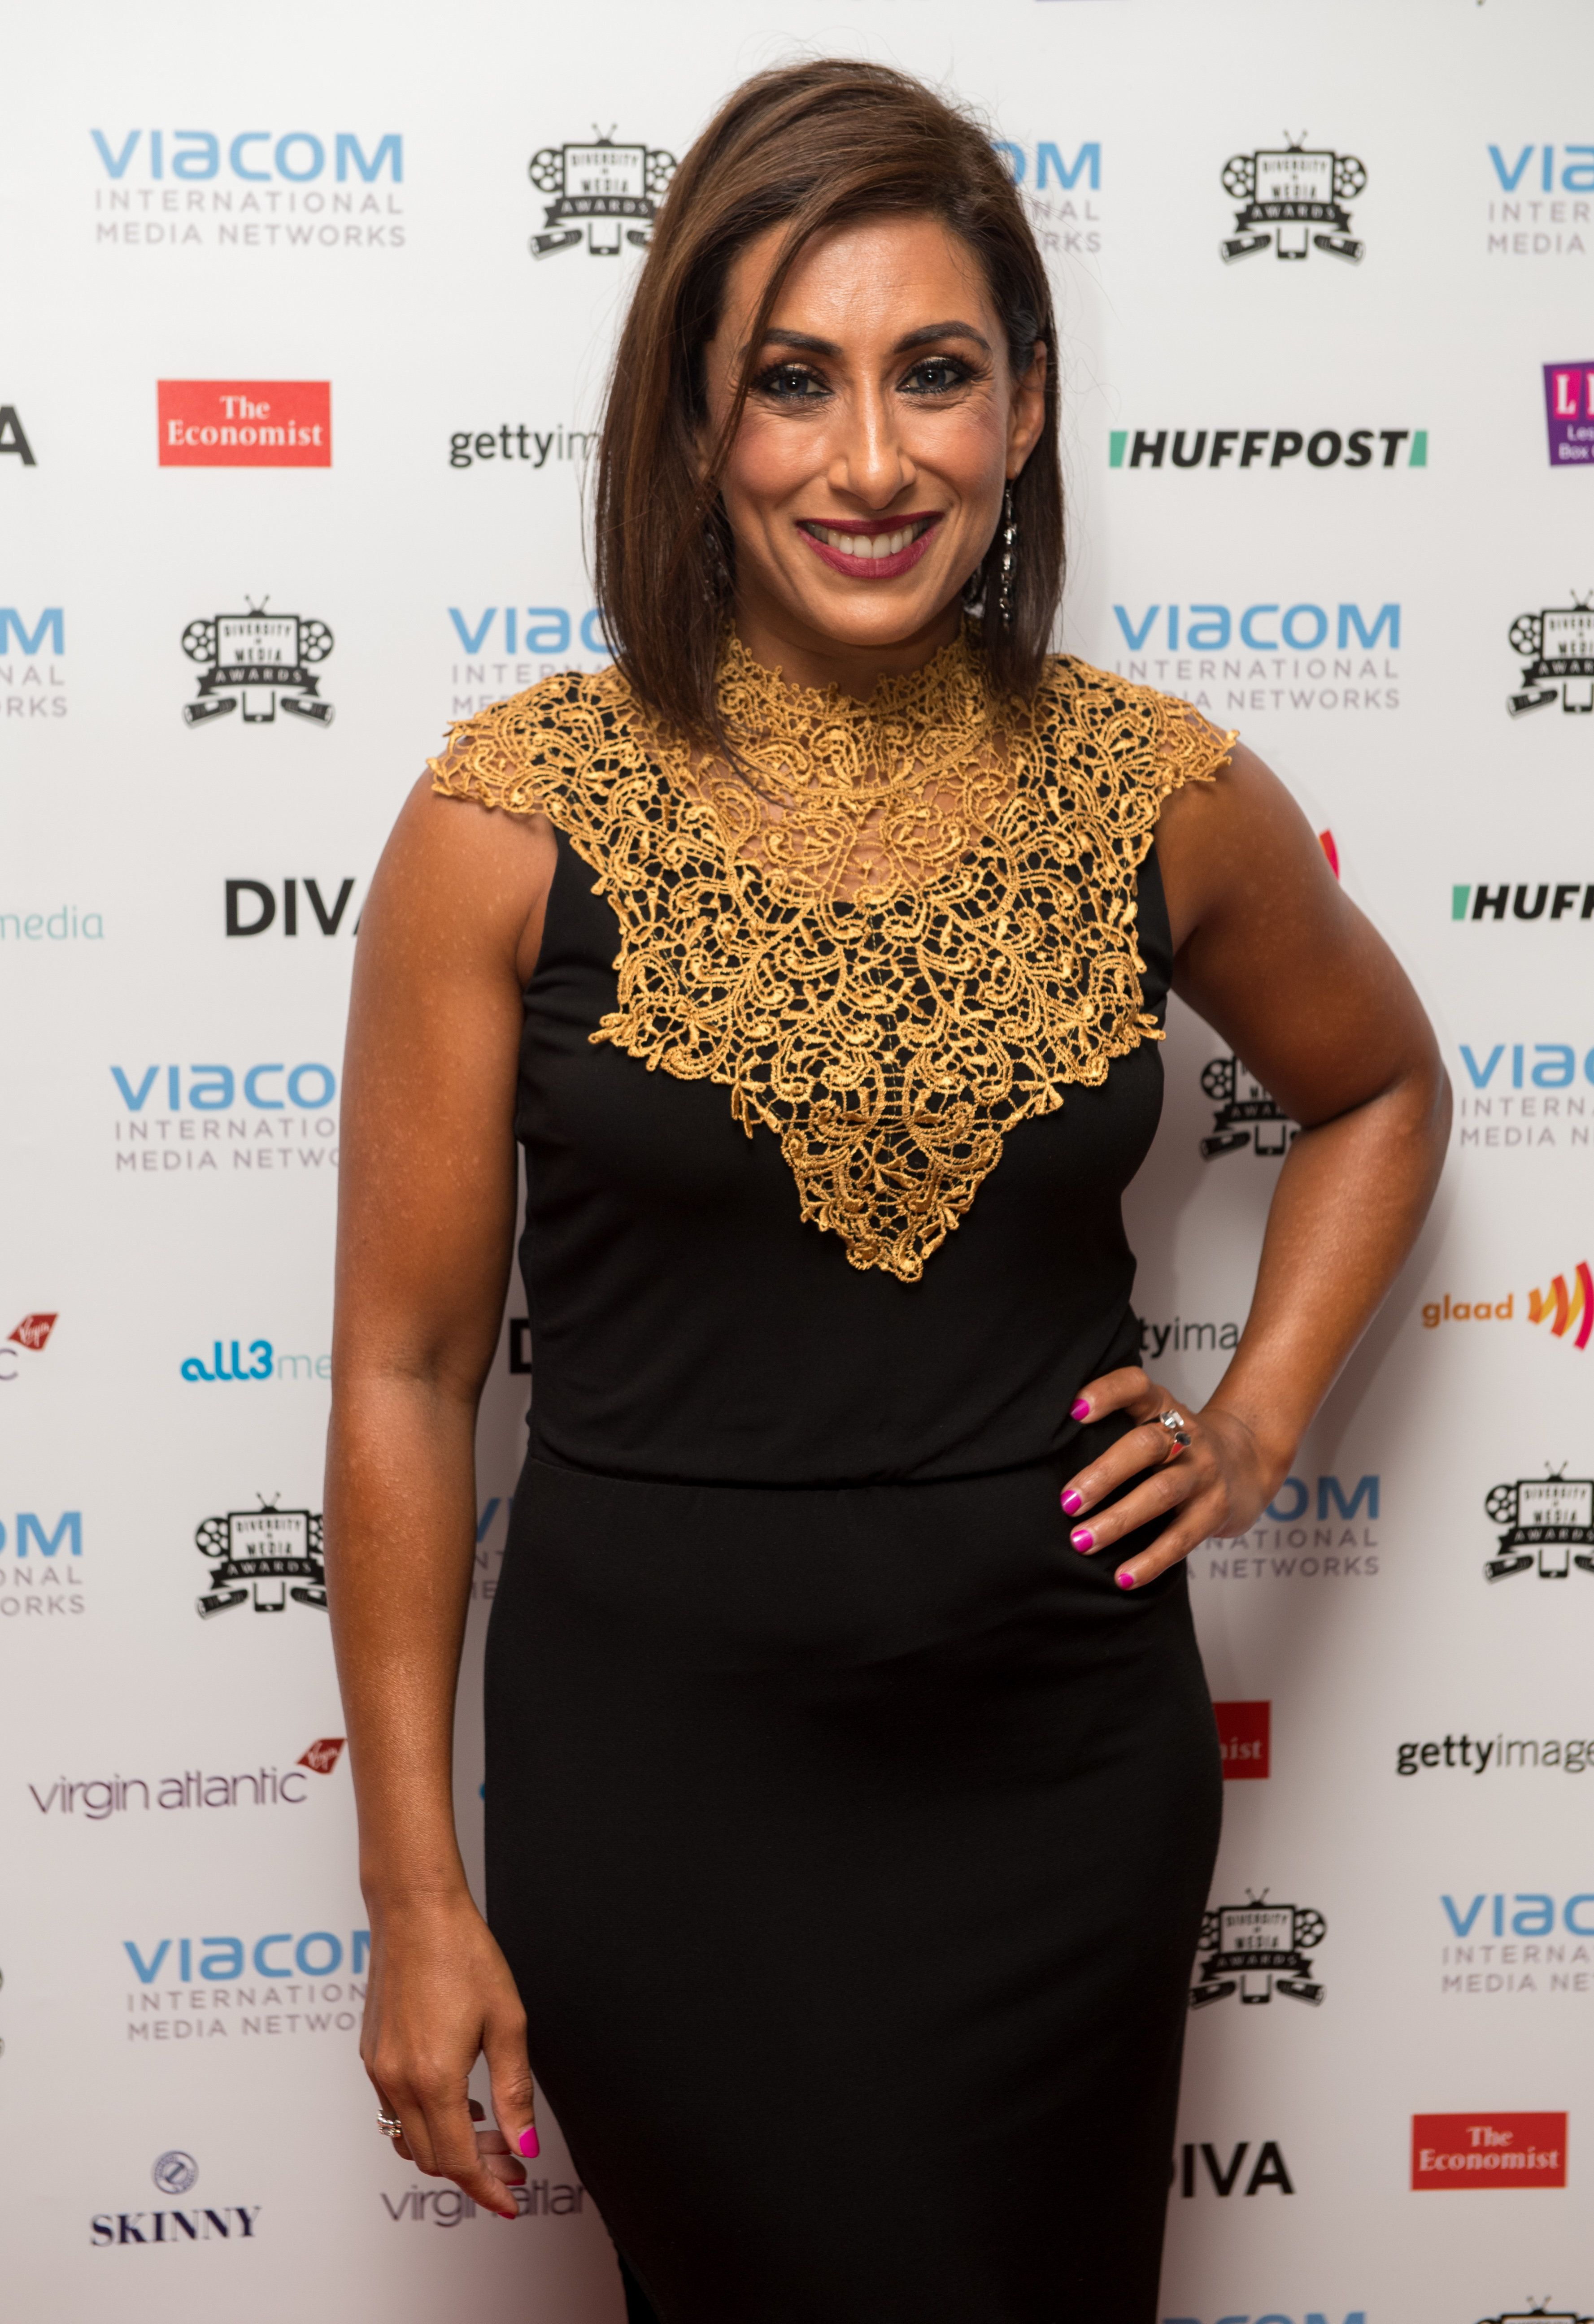 Saira Khan Reveals 'Strictly Come Dancing' Hopes And How She Rates Ruth Langsford's